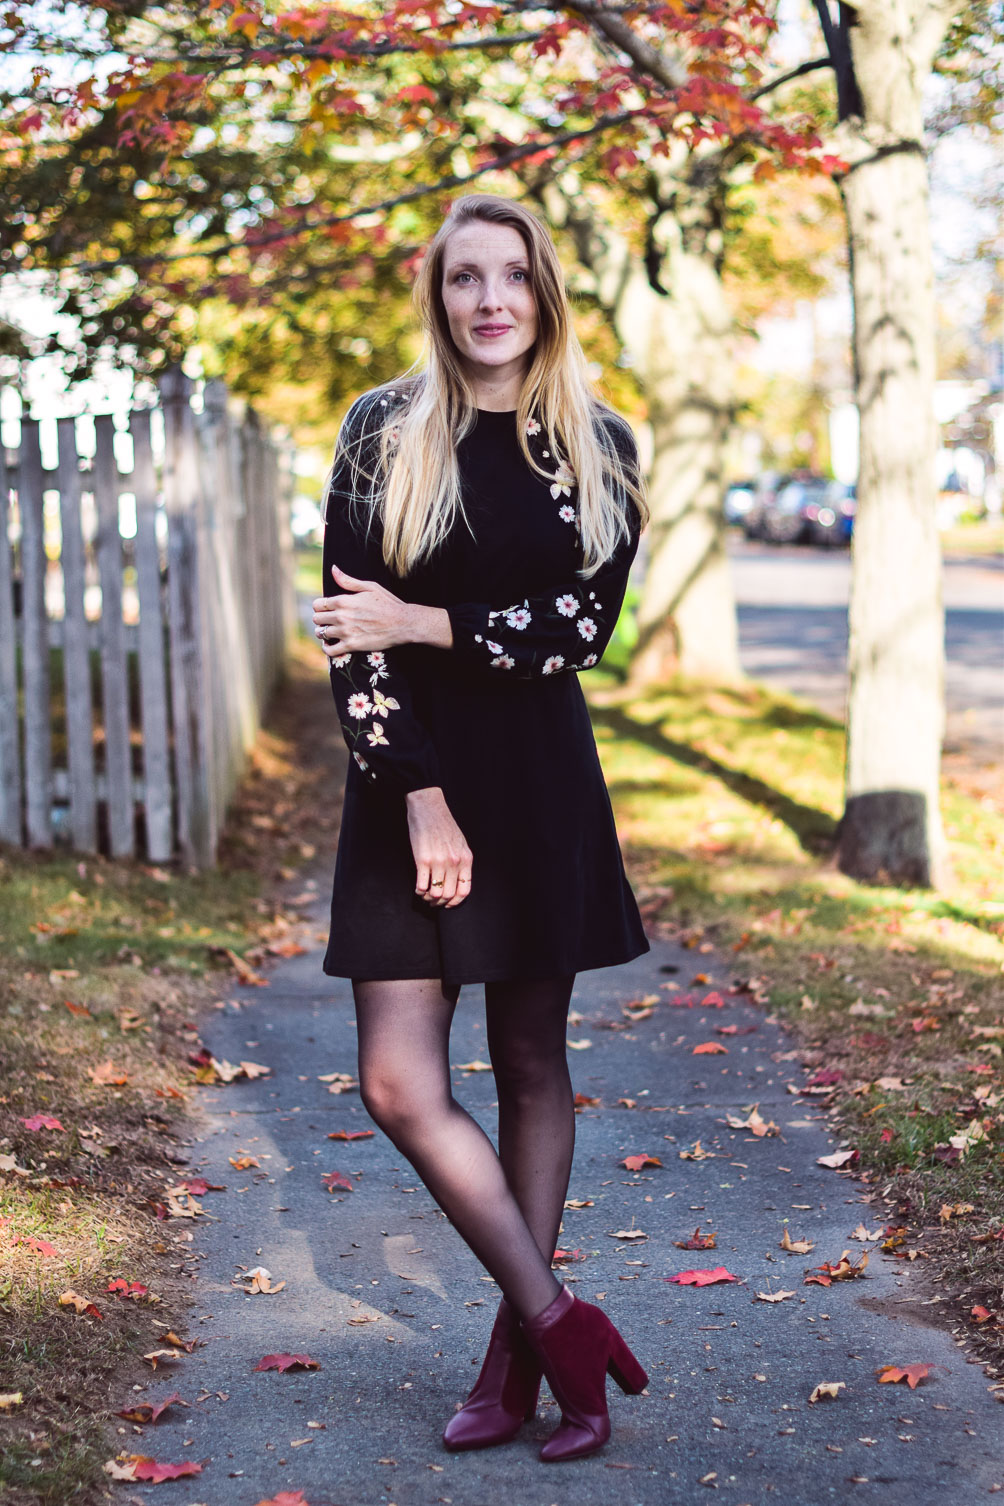 sharing an easy holiday party outfit with this Topshop balloon sleeve dress, checked trench coat, and oxblood booties